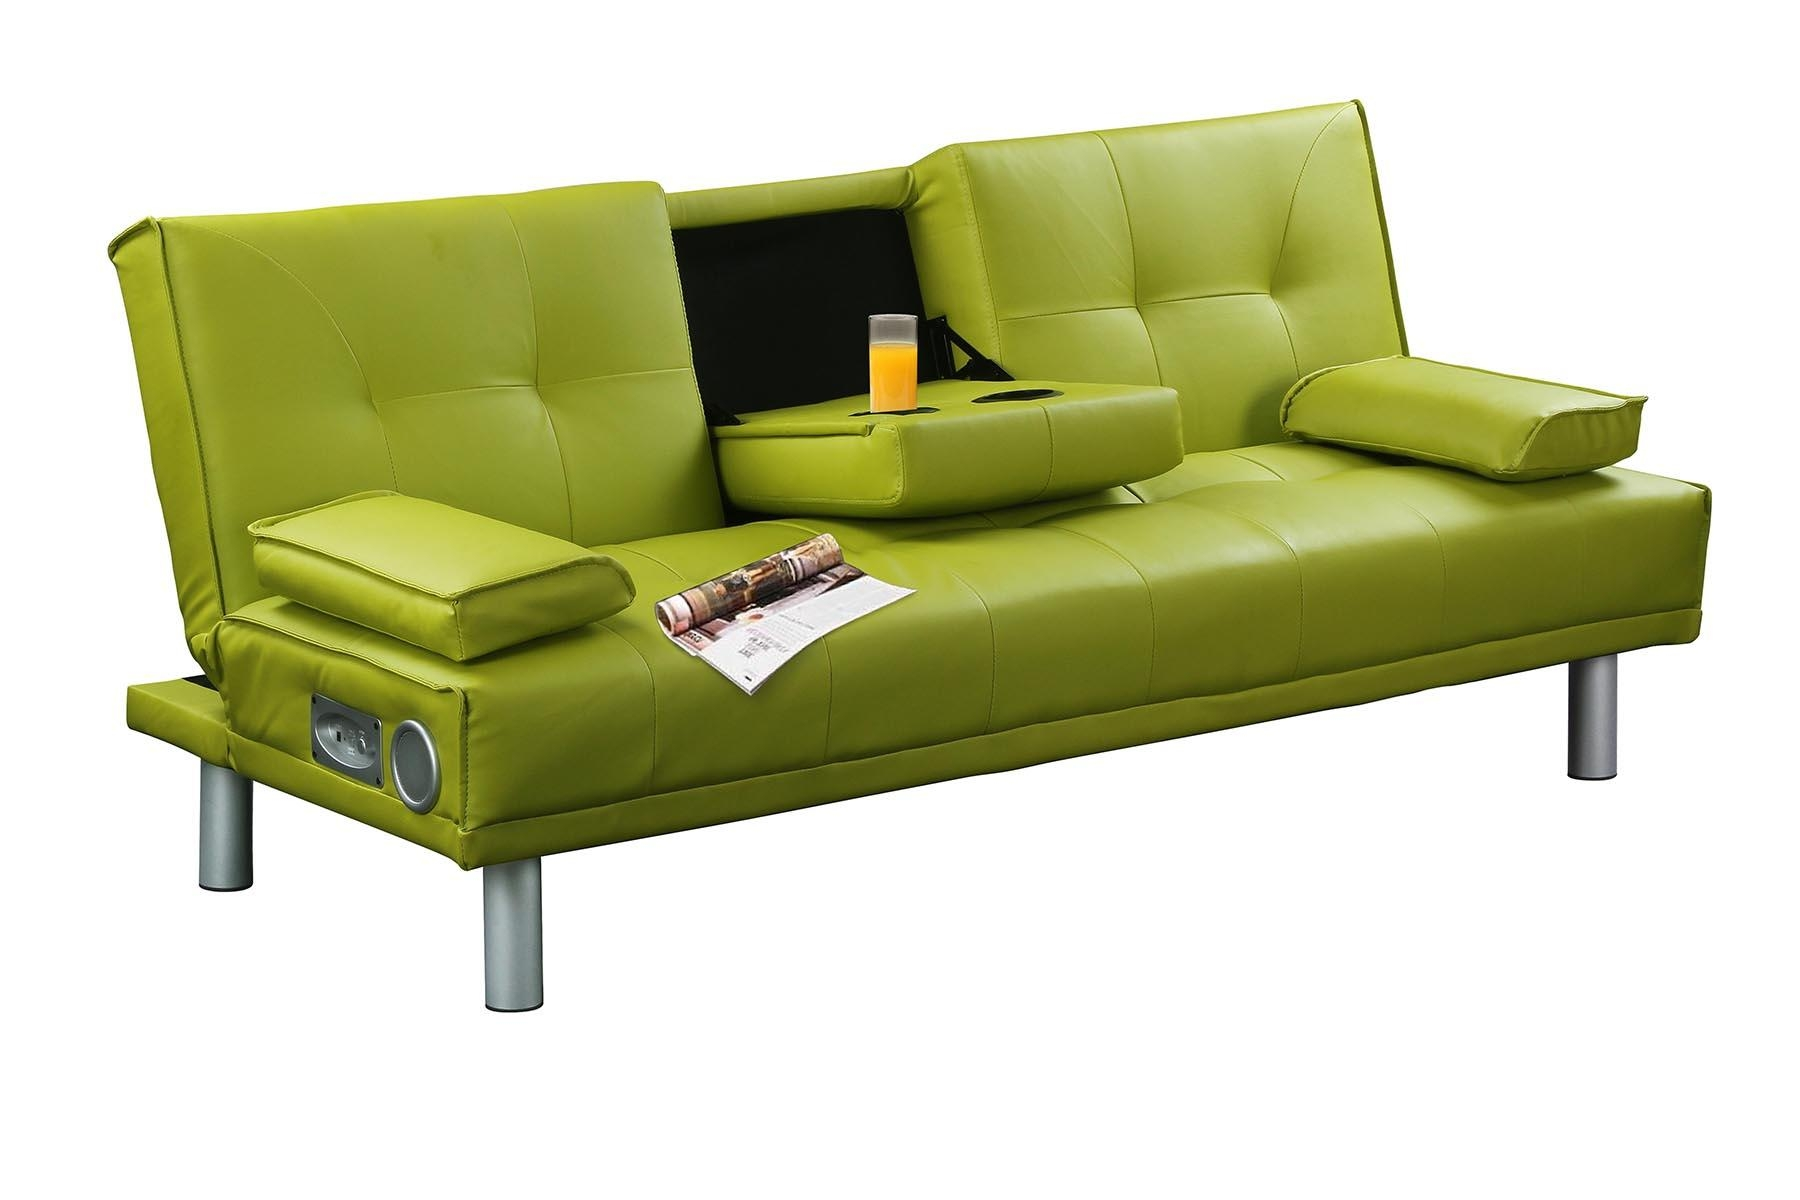 Sleep Number Sofa With Concept Hd Gallery 23363 | Kengire Throughout Sleep Number Sofa Beds (View 7 of 20)